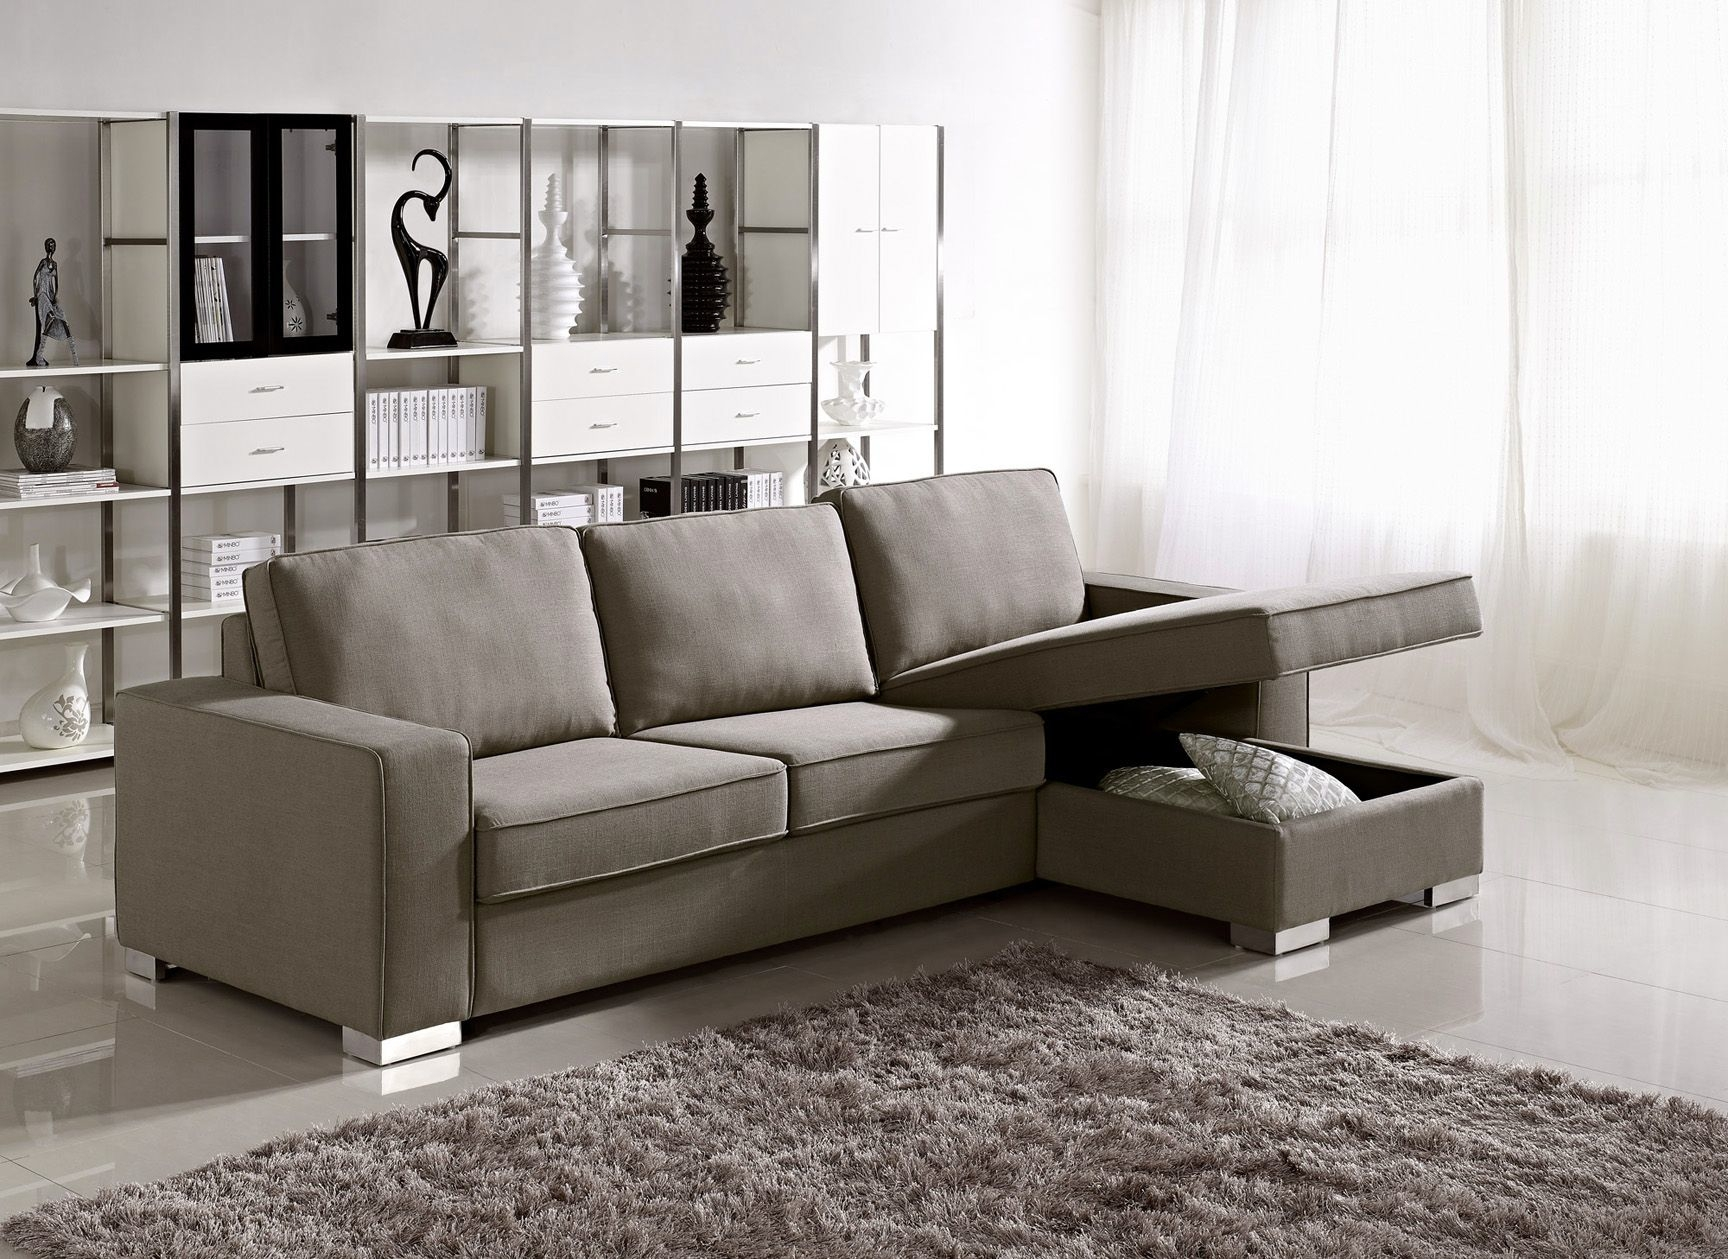 Popular High Quality Sectional Sofas 85 With Additional Abson With Regard  To Abbyson Living Charlotte Dark Part 84